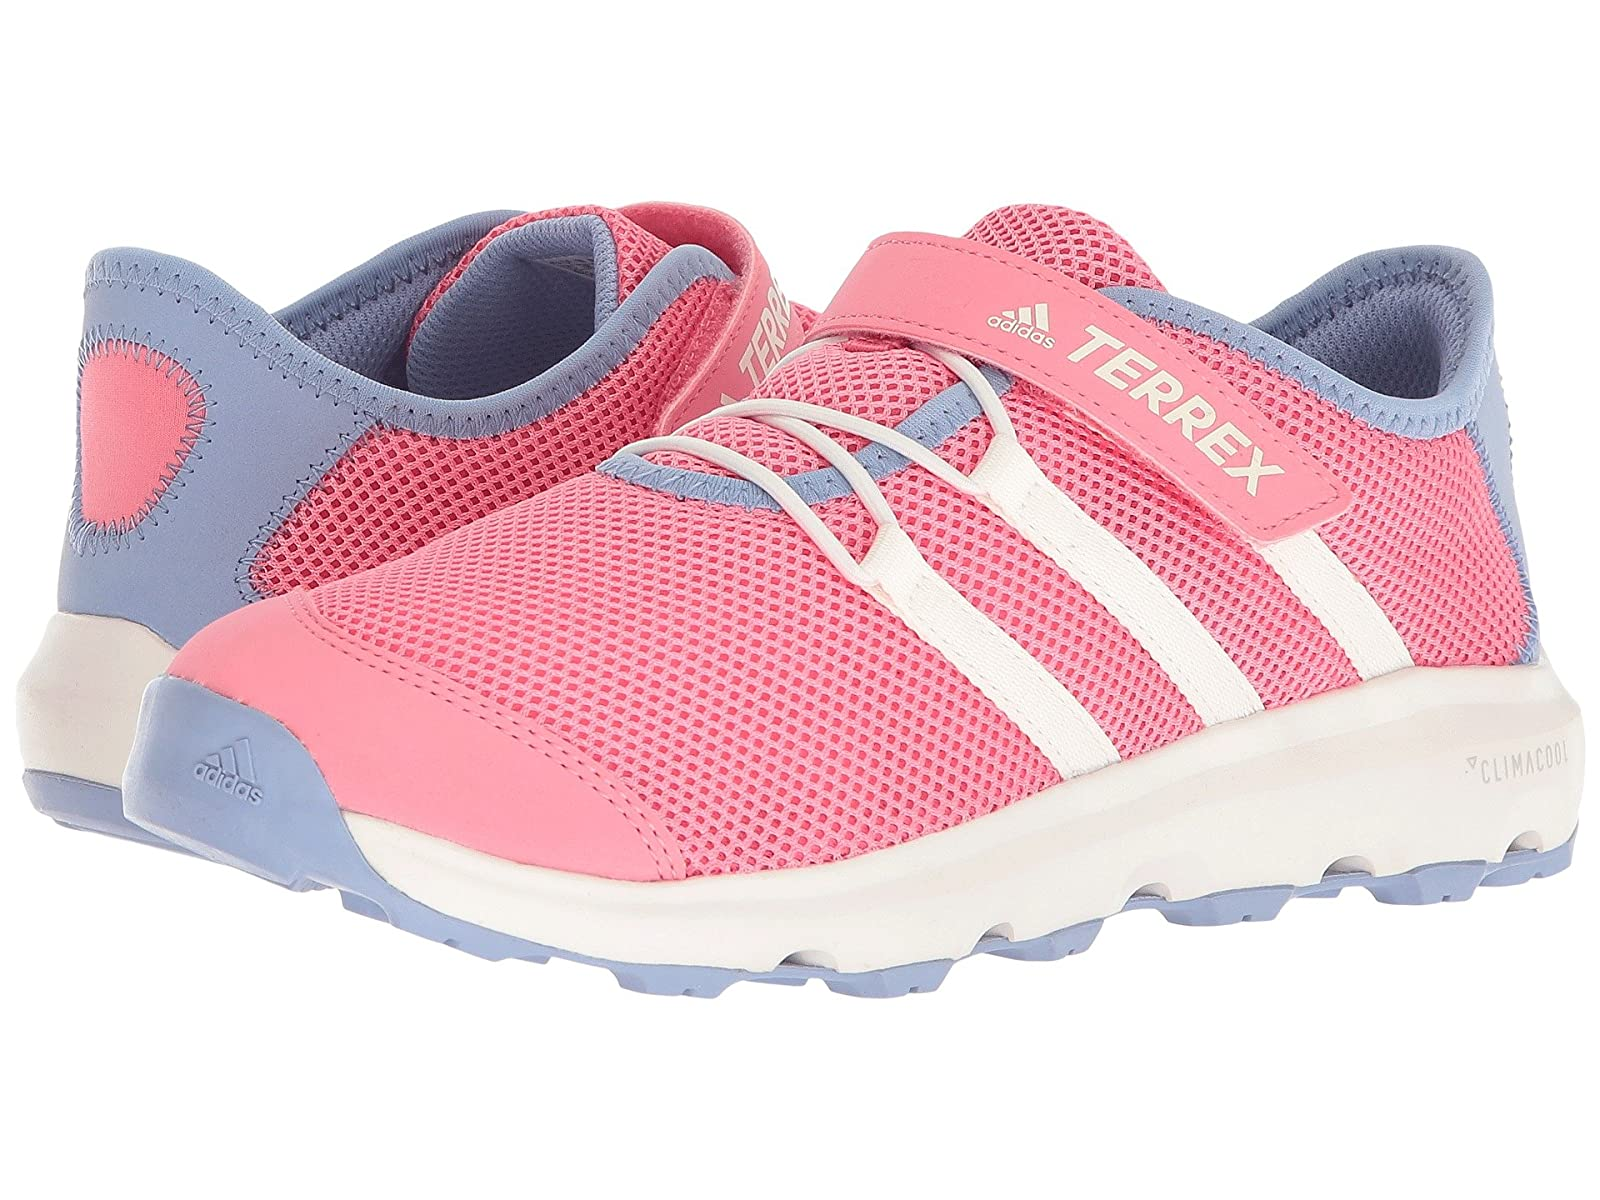 adidas Outdoor Kids Terrex Climacool Voyager CF (Little Kid/Big Kid)Stylish and characteristic shoes